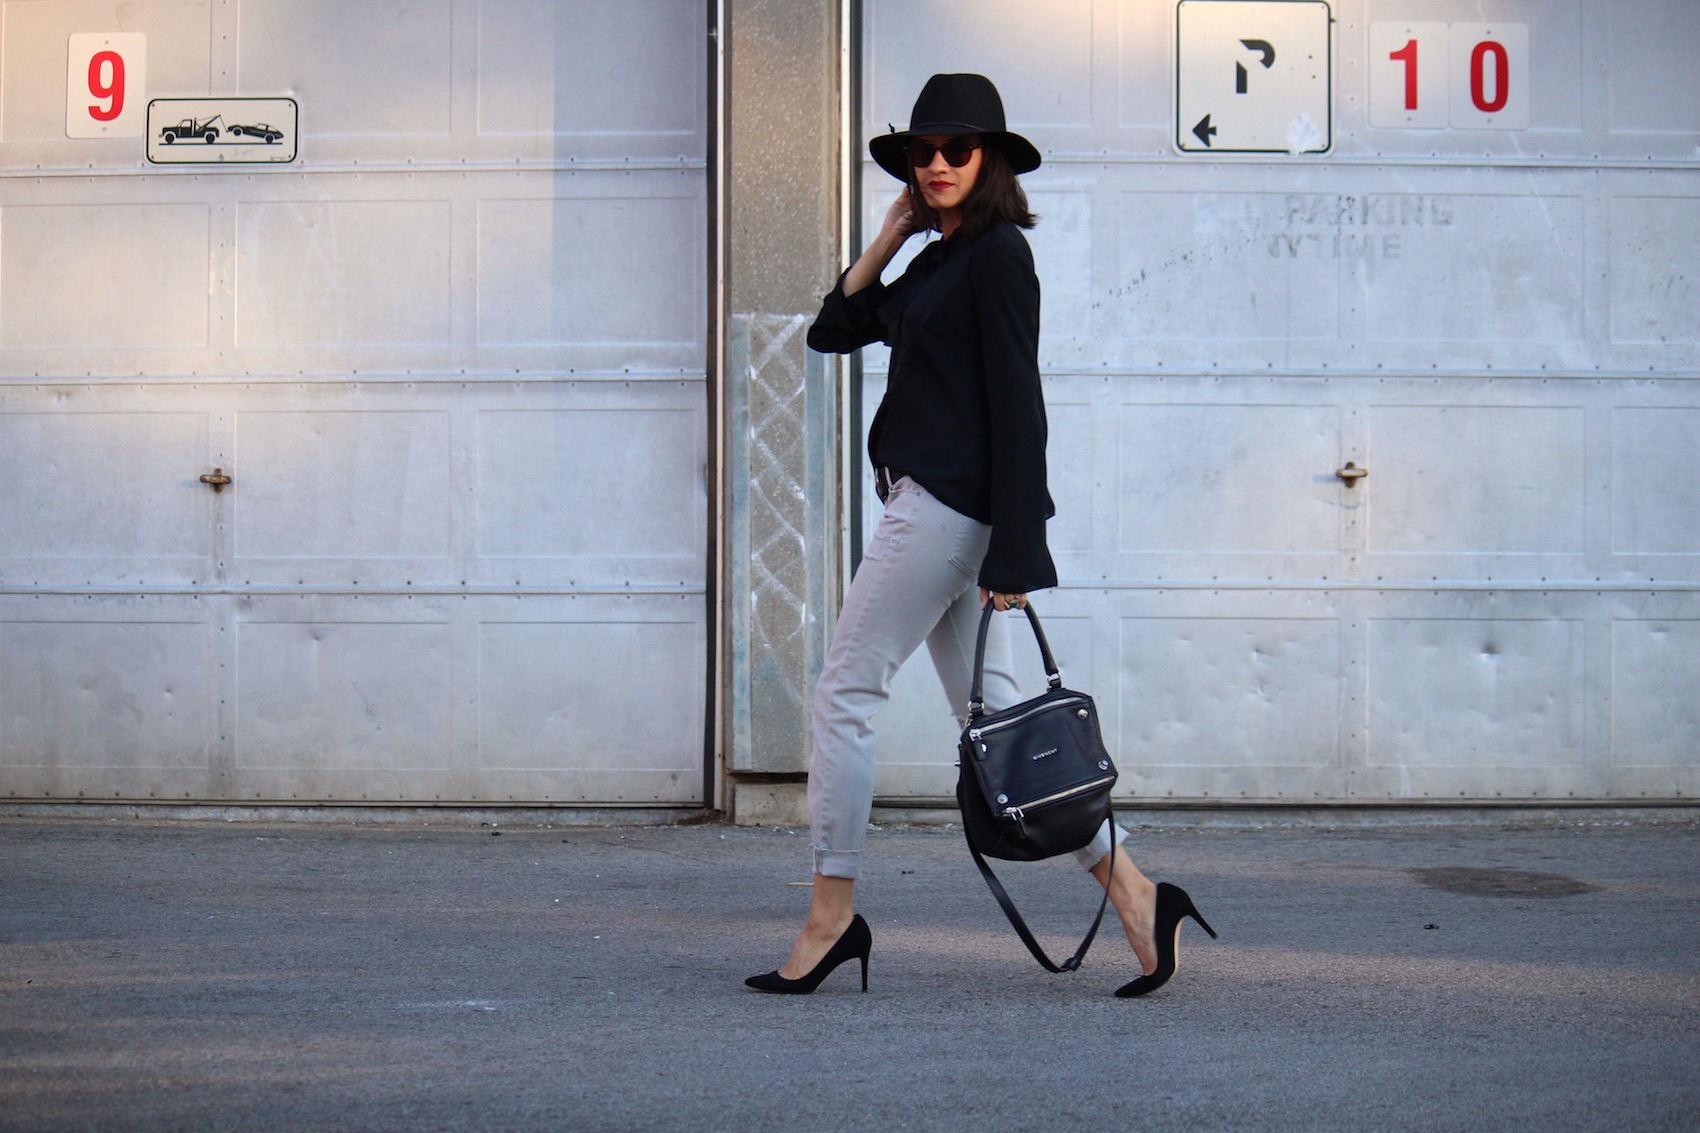 WoahStyle.com_Light grey jeans, black silk top, floppy hat, Givenchy Small black Pandora, black suede pumps, fall fashion 70s #streetstyle_street style_7706.jpg